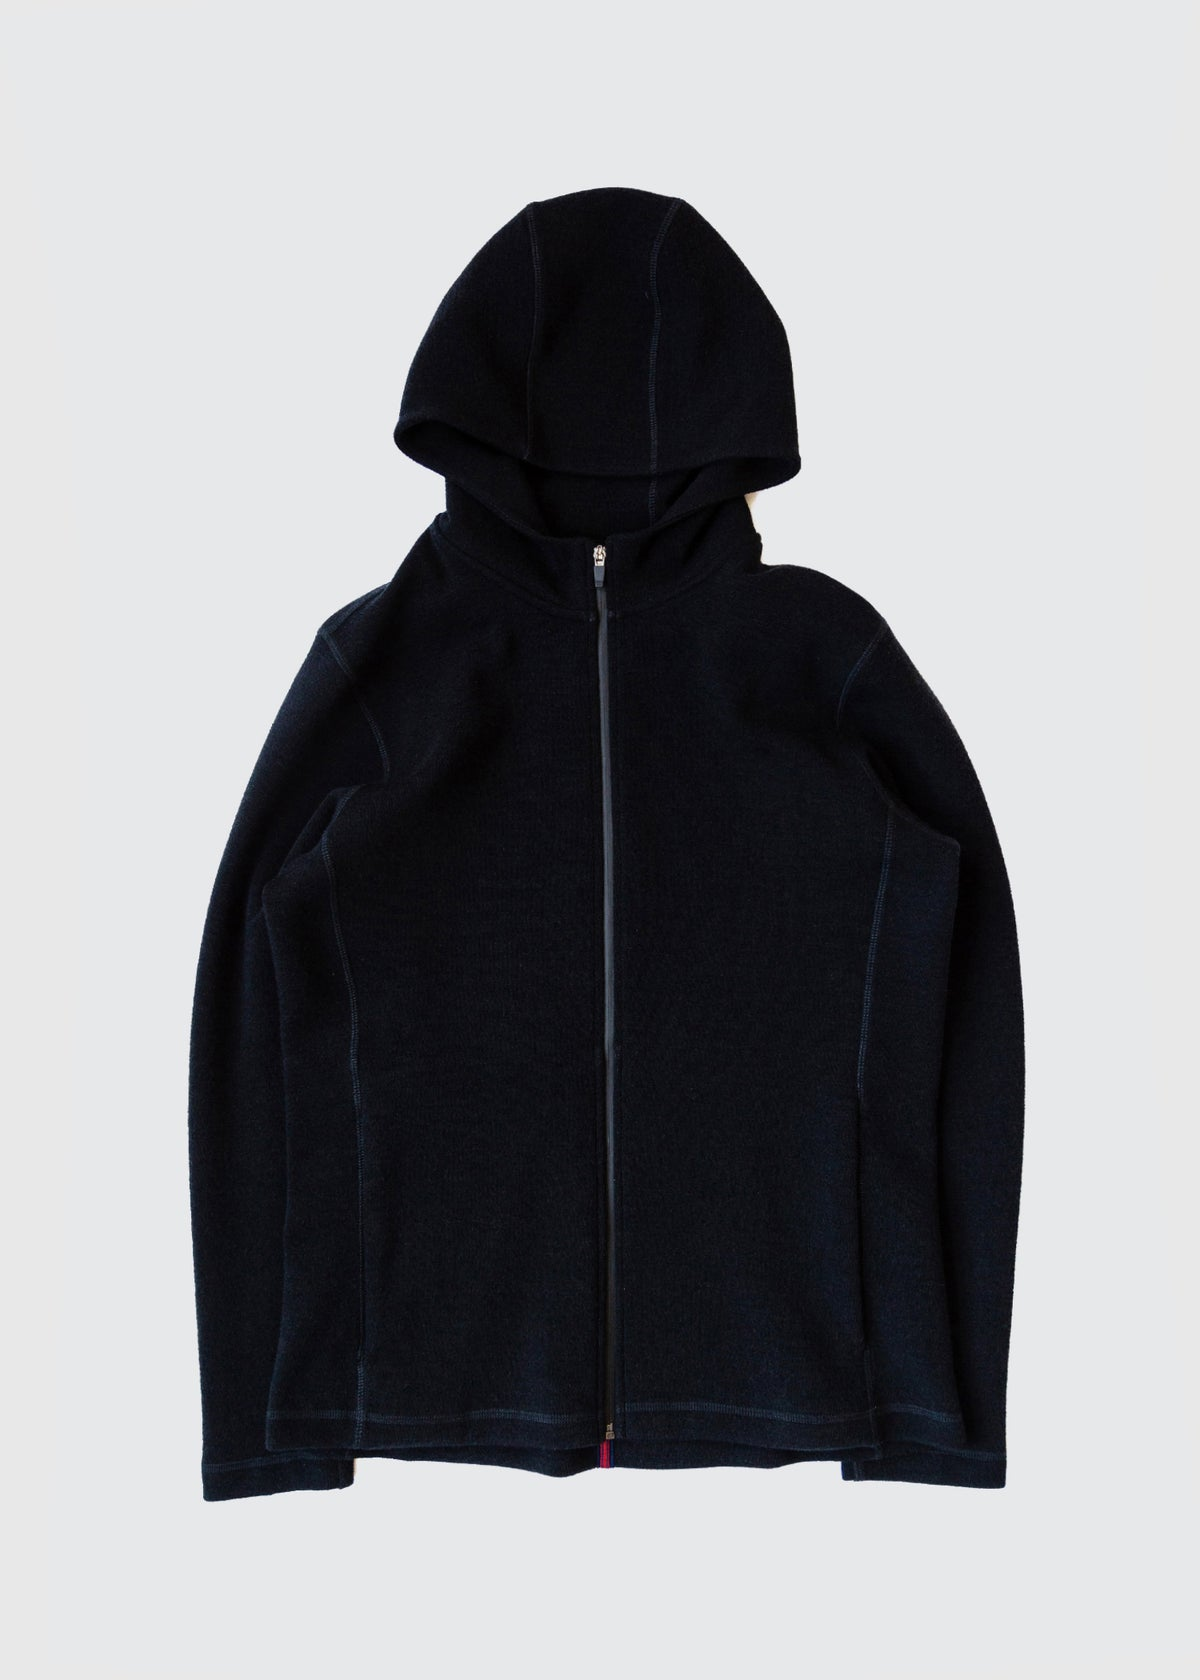 201 - NYLON HOODED ZIP - BLACK